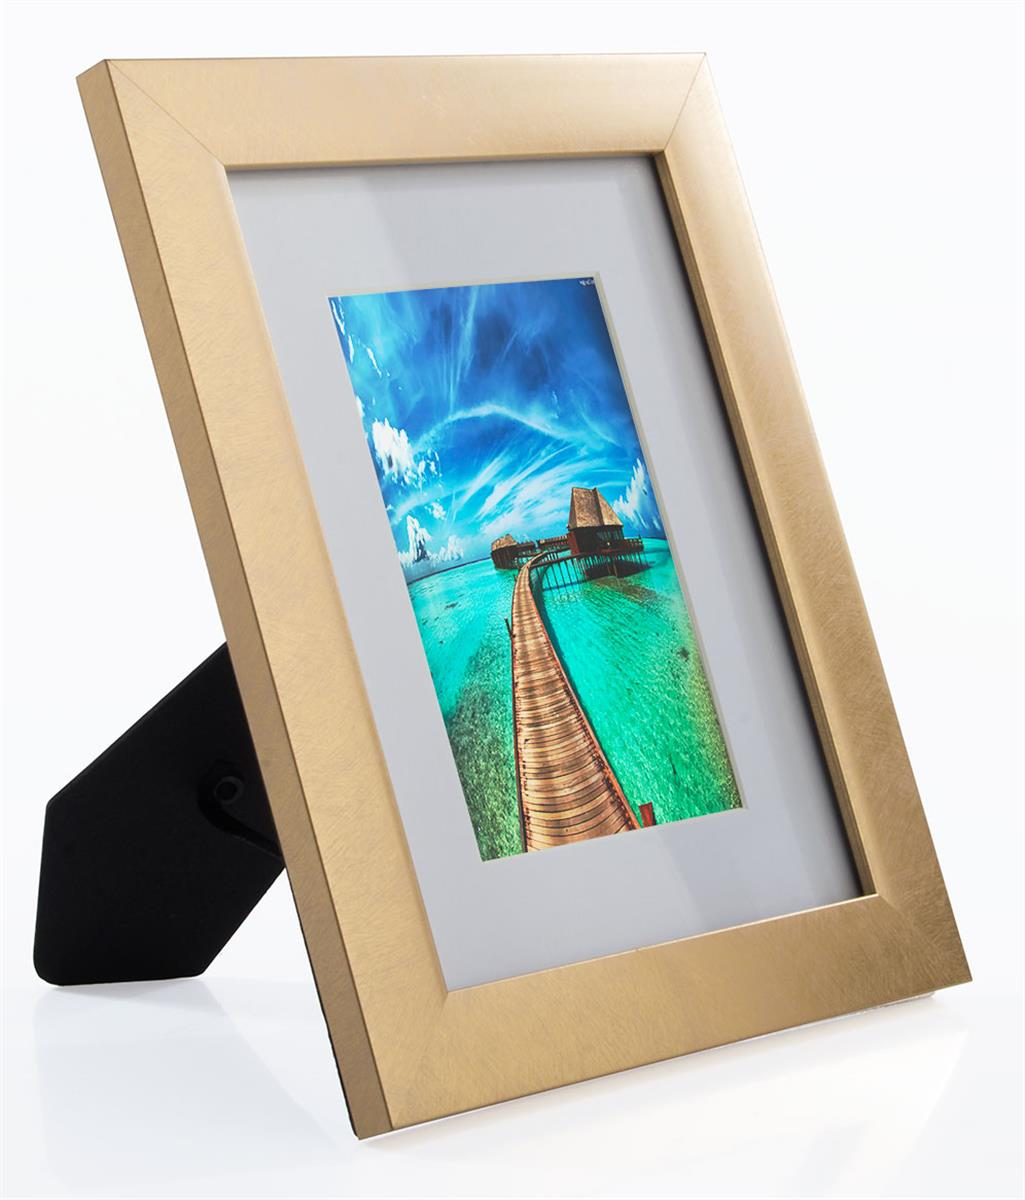 4 X 6 Distressed Gold Picture Frame Wall Mount Or Tabletop